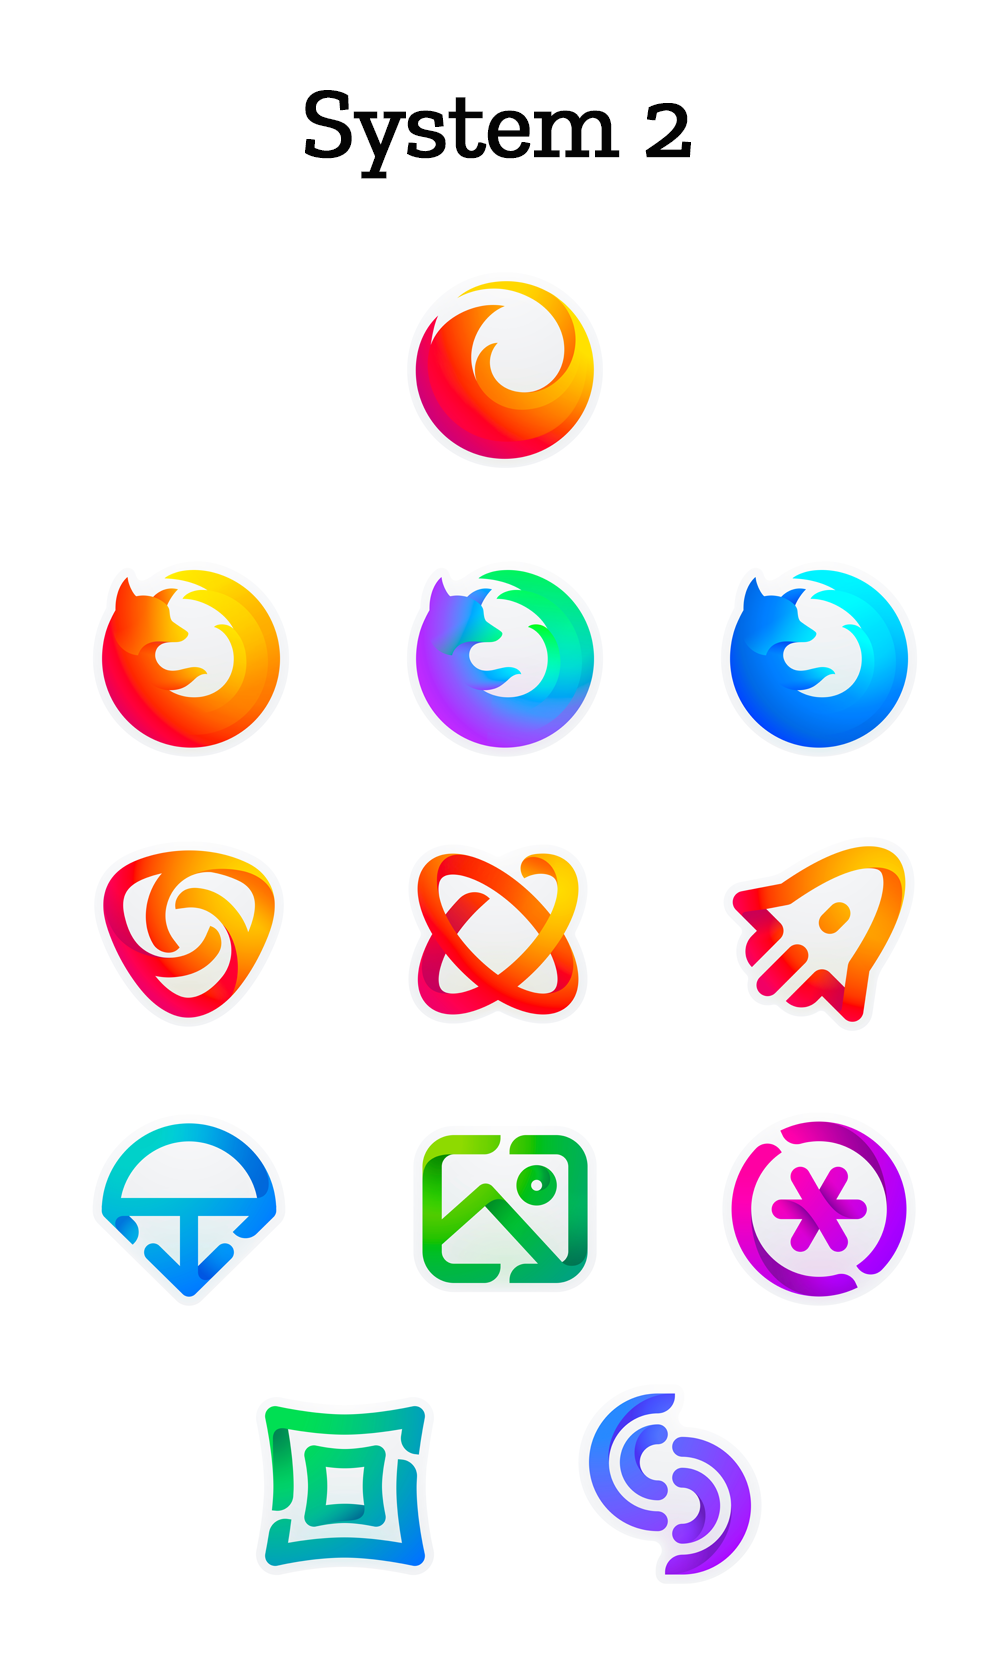 Firefox is getting a new logo, and Mozilla wants to hear what users